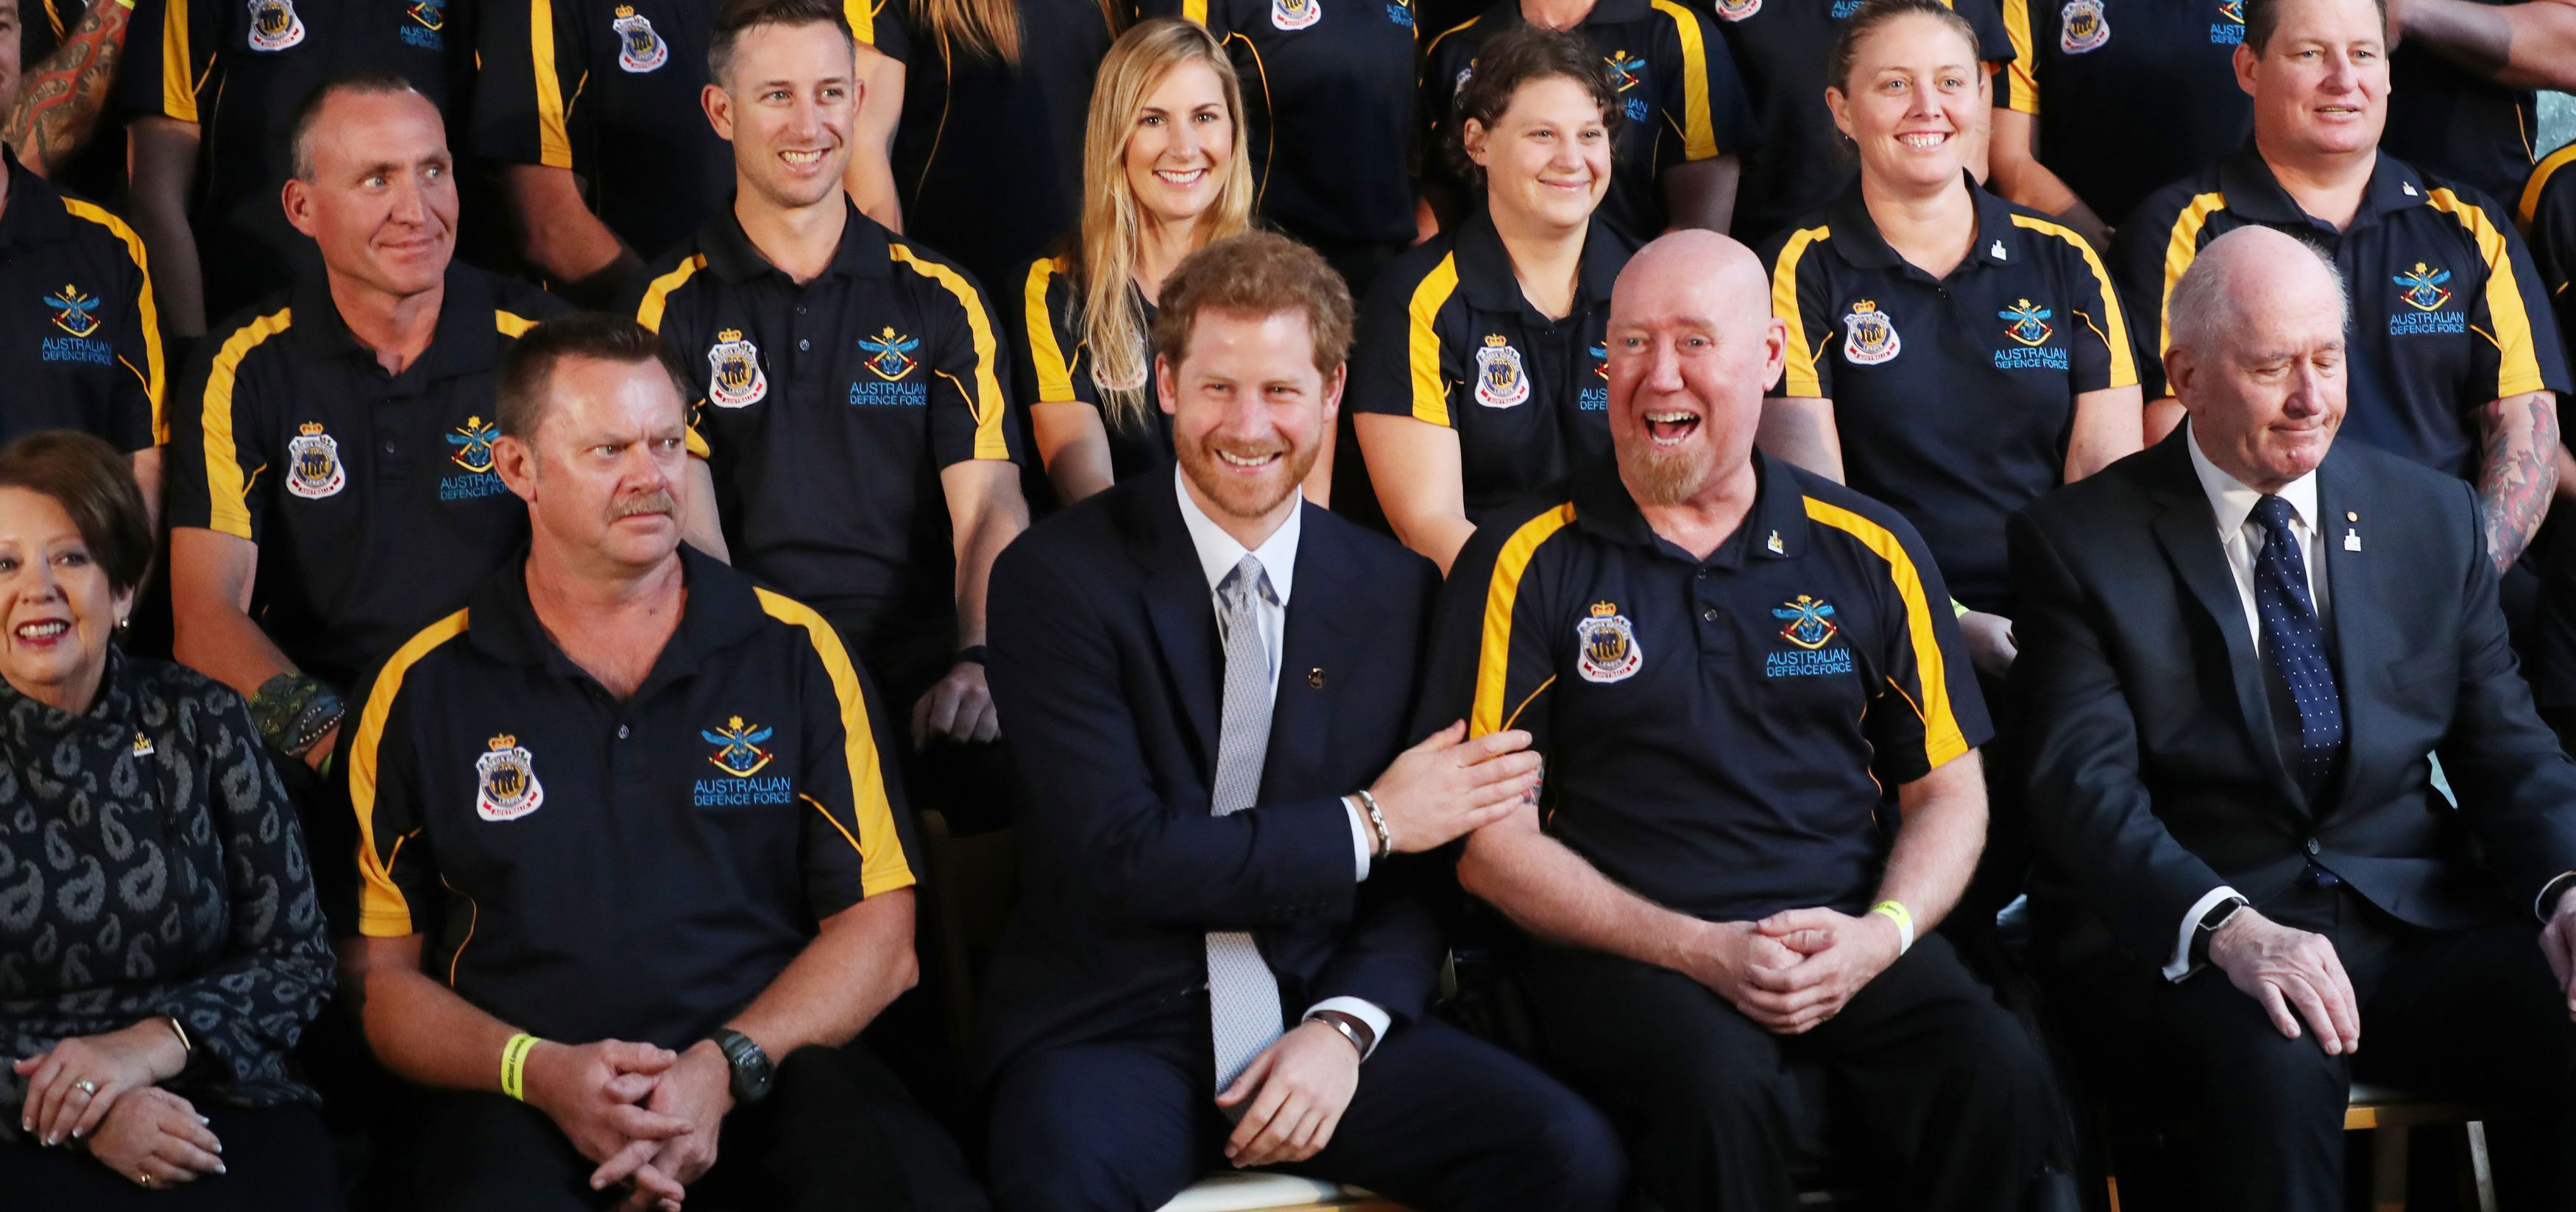 Prince Harry opens the Invictus Games in Australia